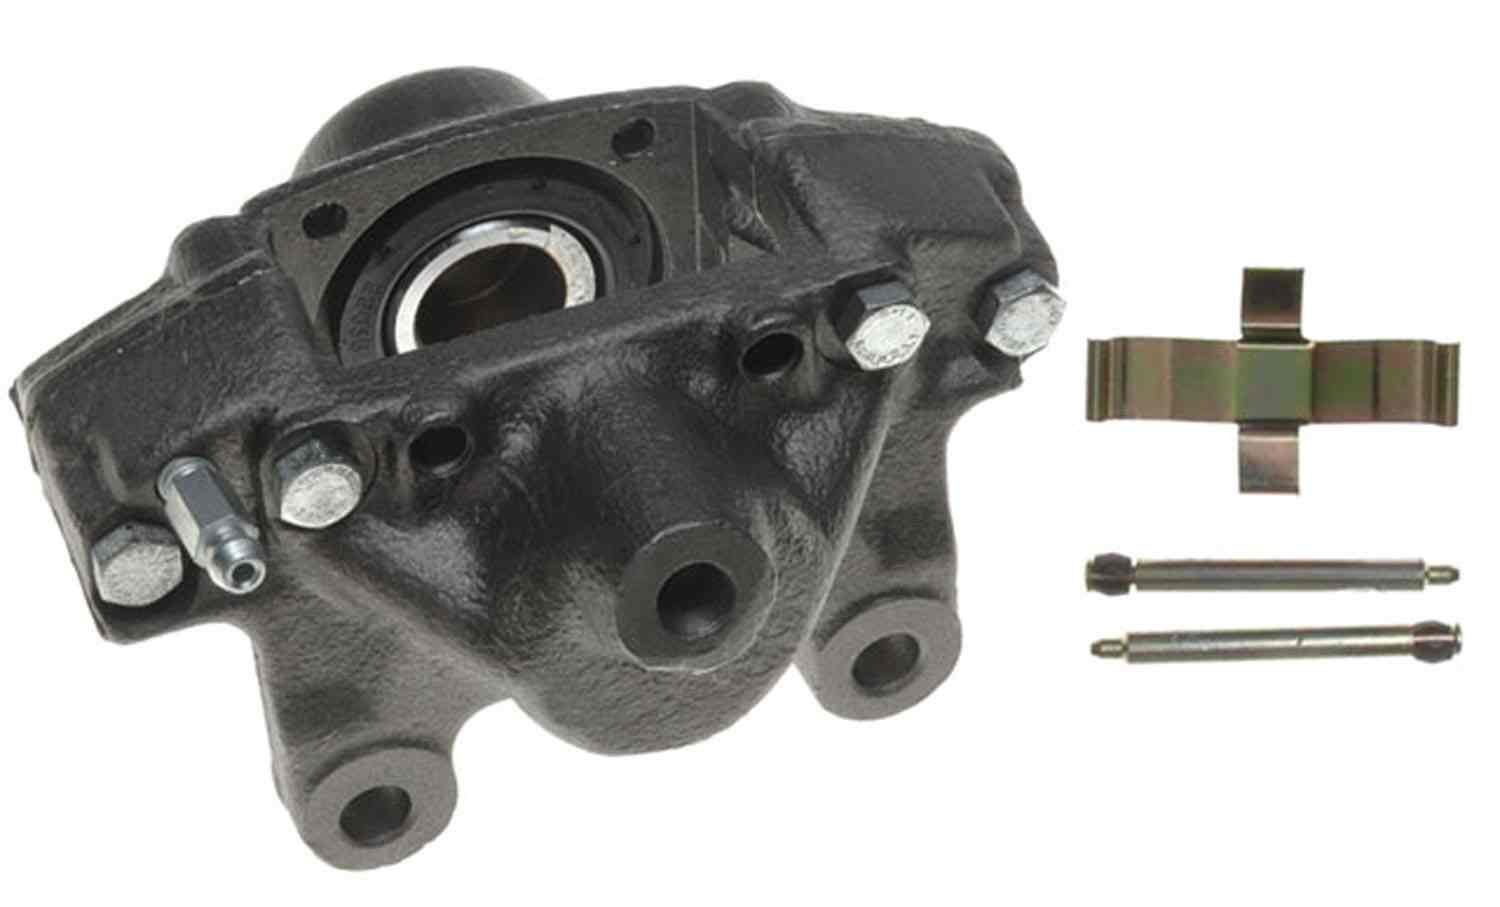 ACDELCO PROFESSIONAL BRAKES - Reman Friction Ready Non-Coated Disc Brake Caliper (Rear Right) - ADU 18FR927